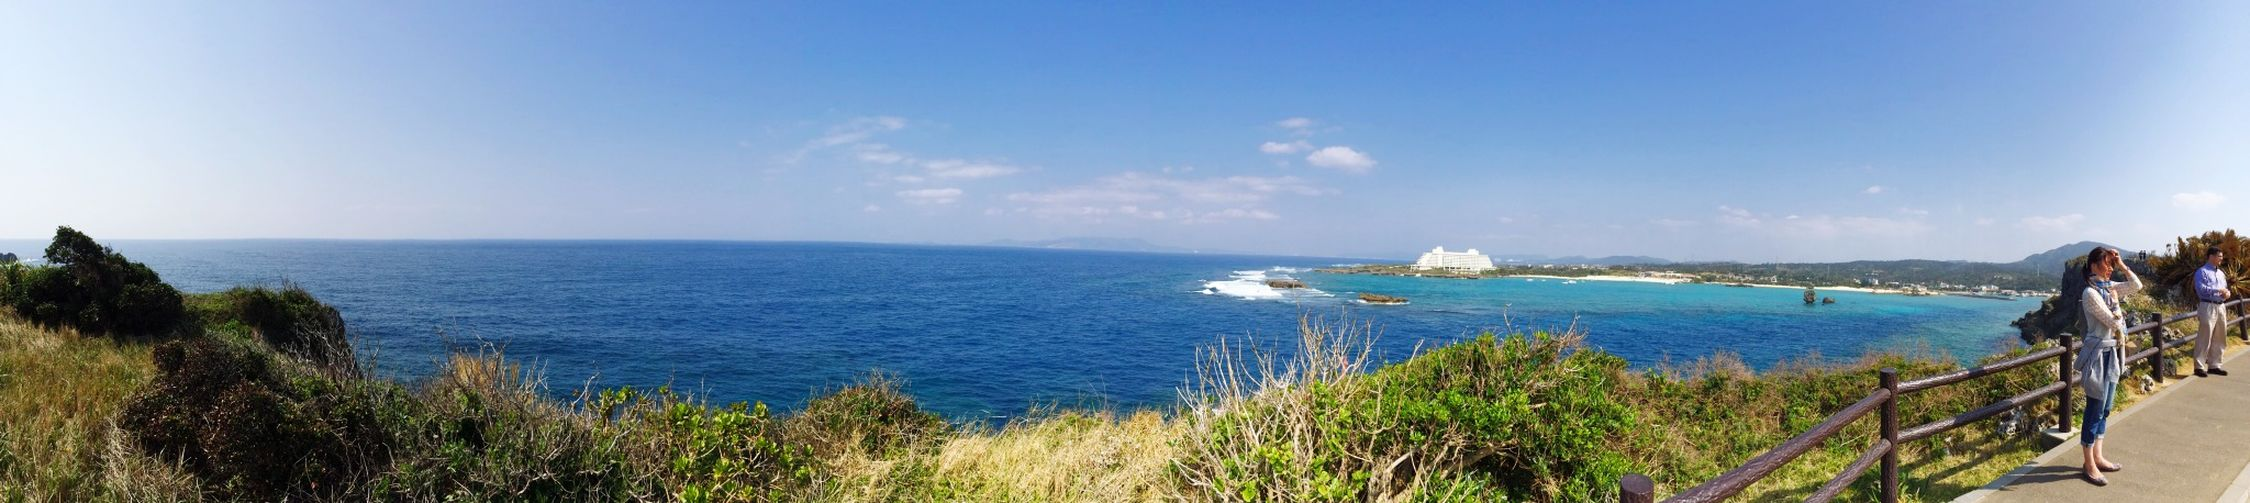 Sea Relaxing Okinawa Taking Photos Panorama